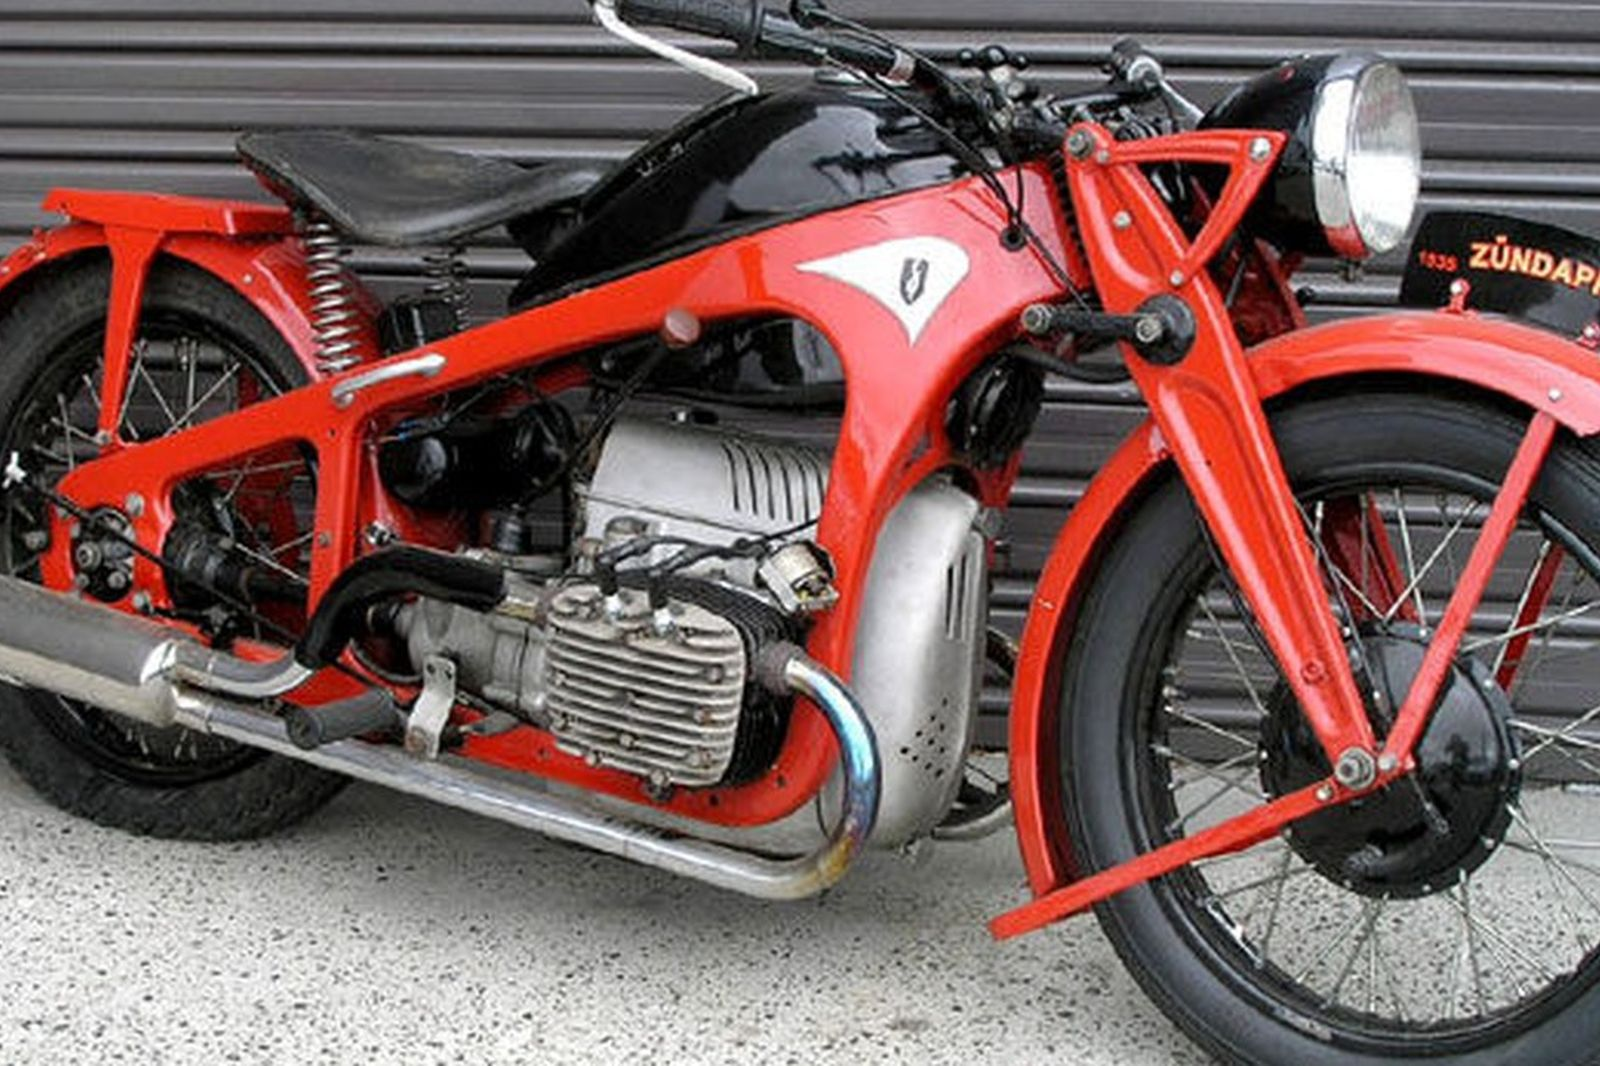 Sold Zundapp K800 Solo Motorcycle Auctions Lot 50